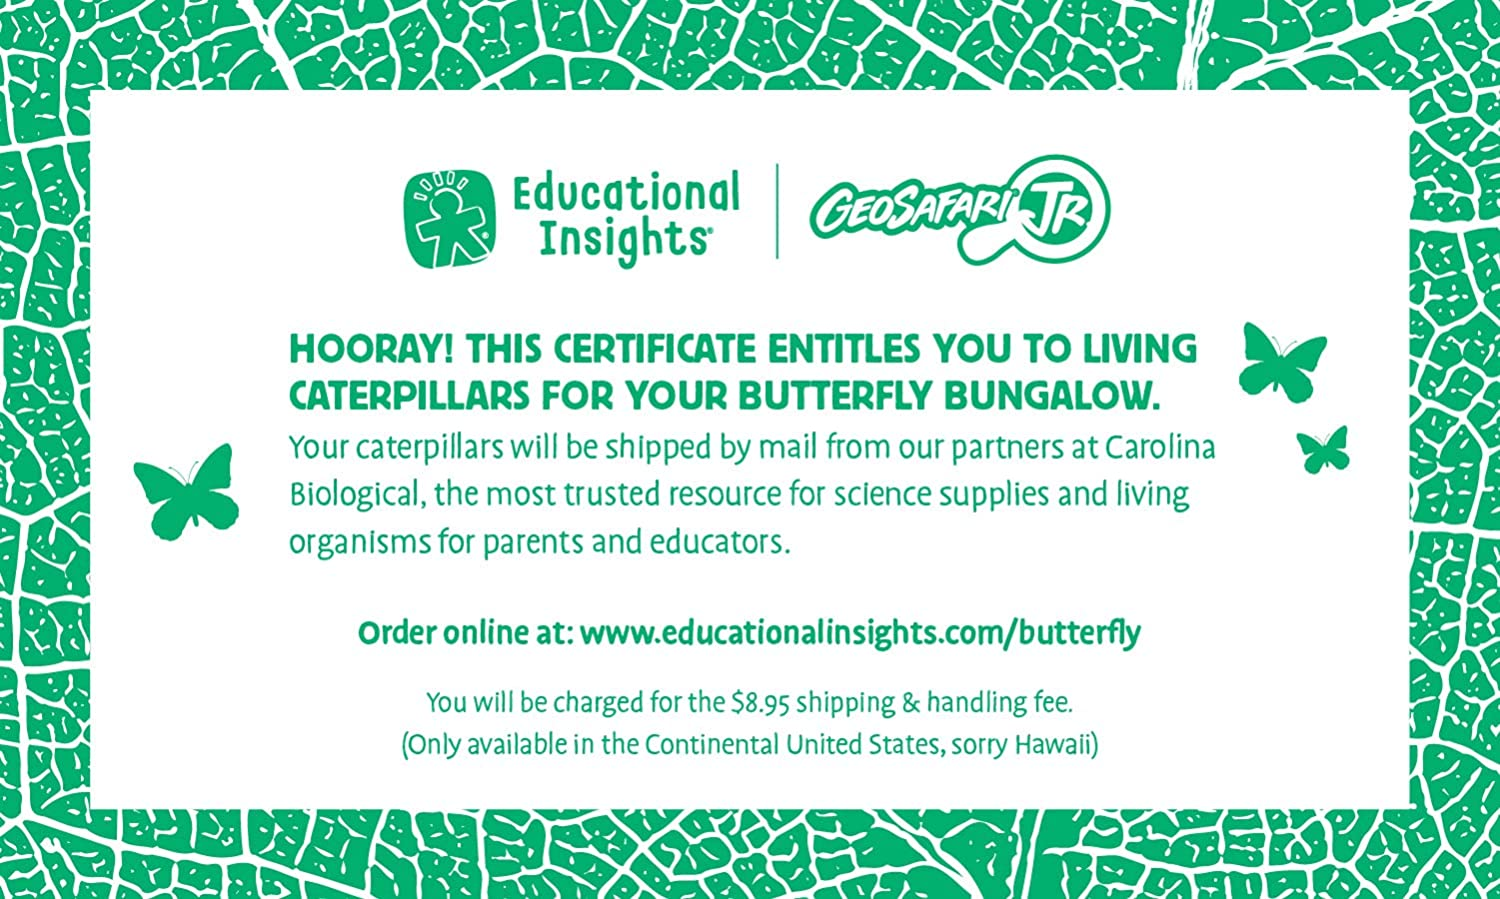 NEW Educational Insights Geosafari Jr Butterfly Bungalow